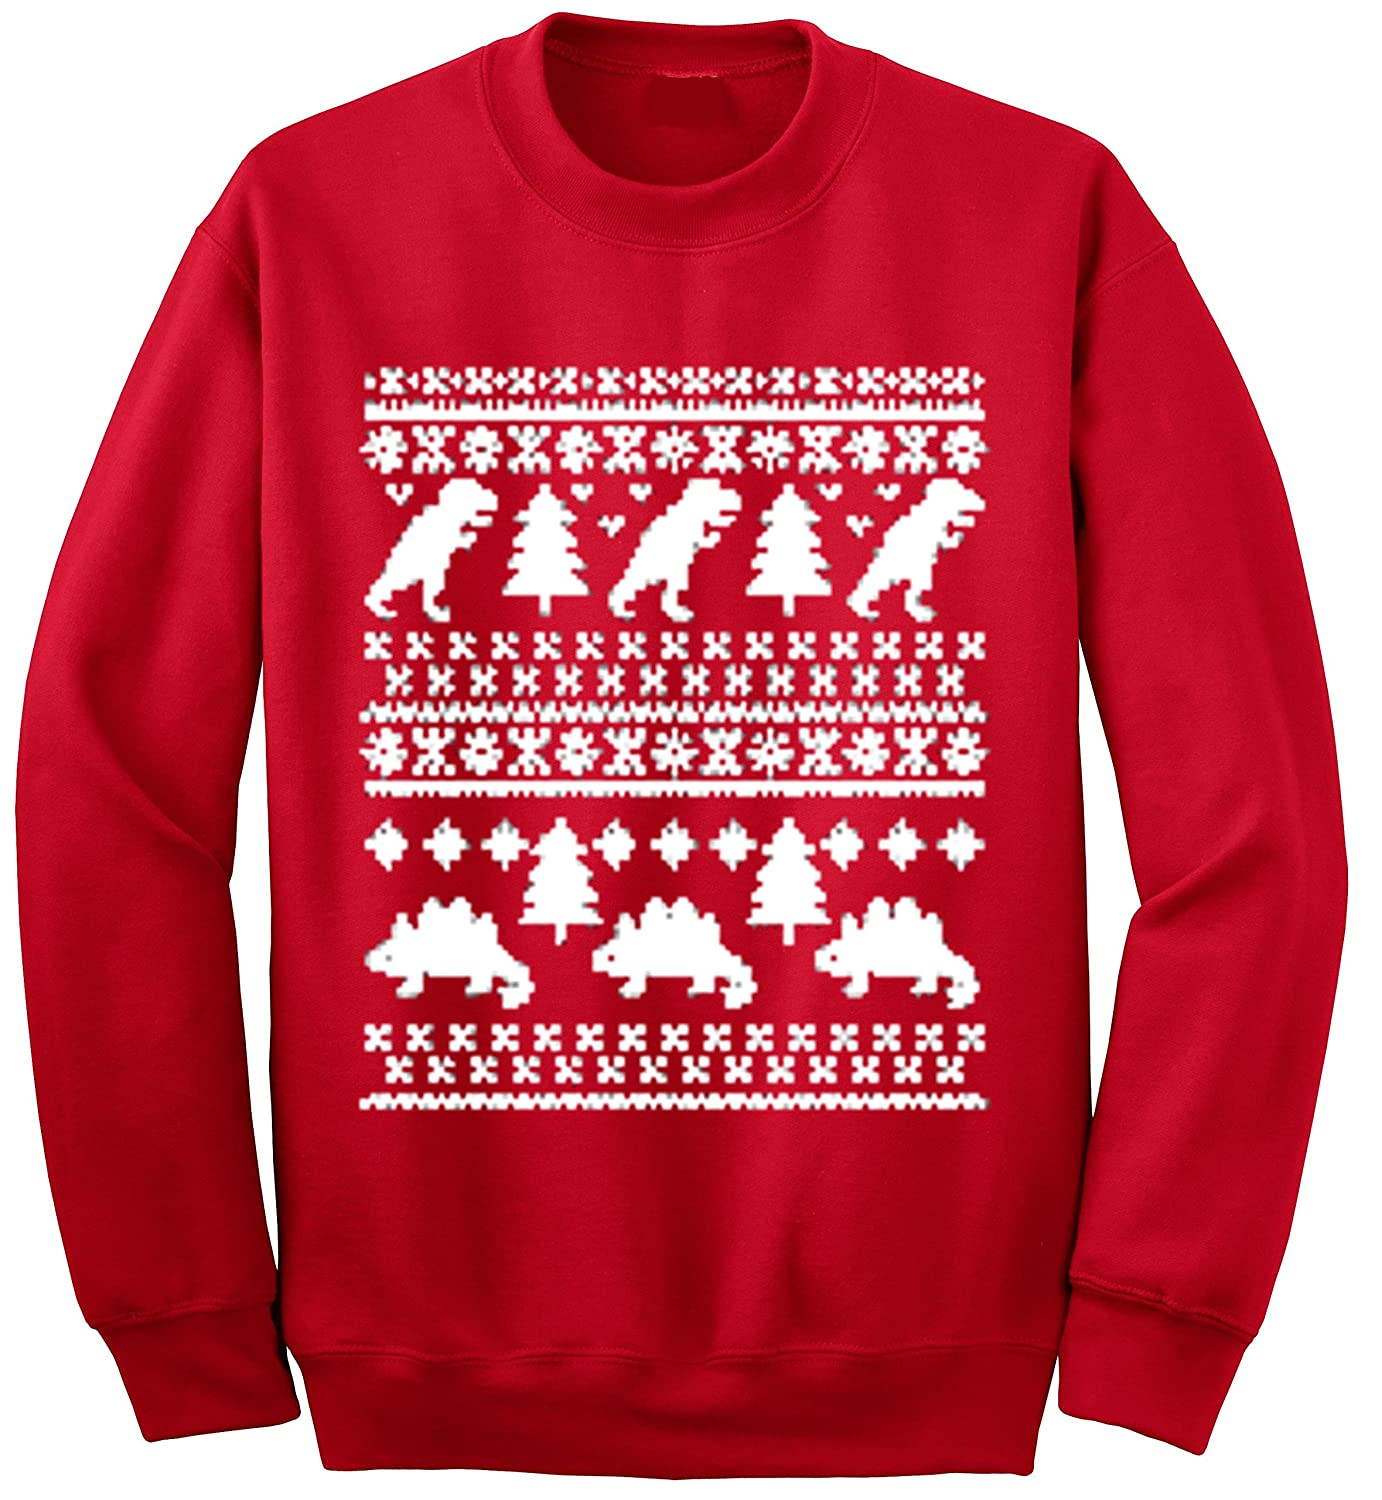 Ym Wear Adult Dinosaurs Trees T Rex Ugly Christmas Sweater Crewneck